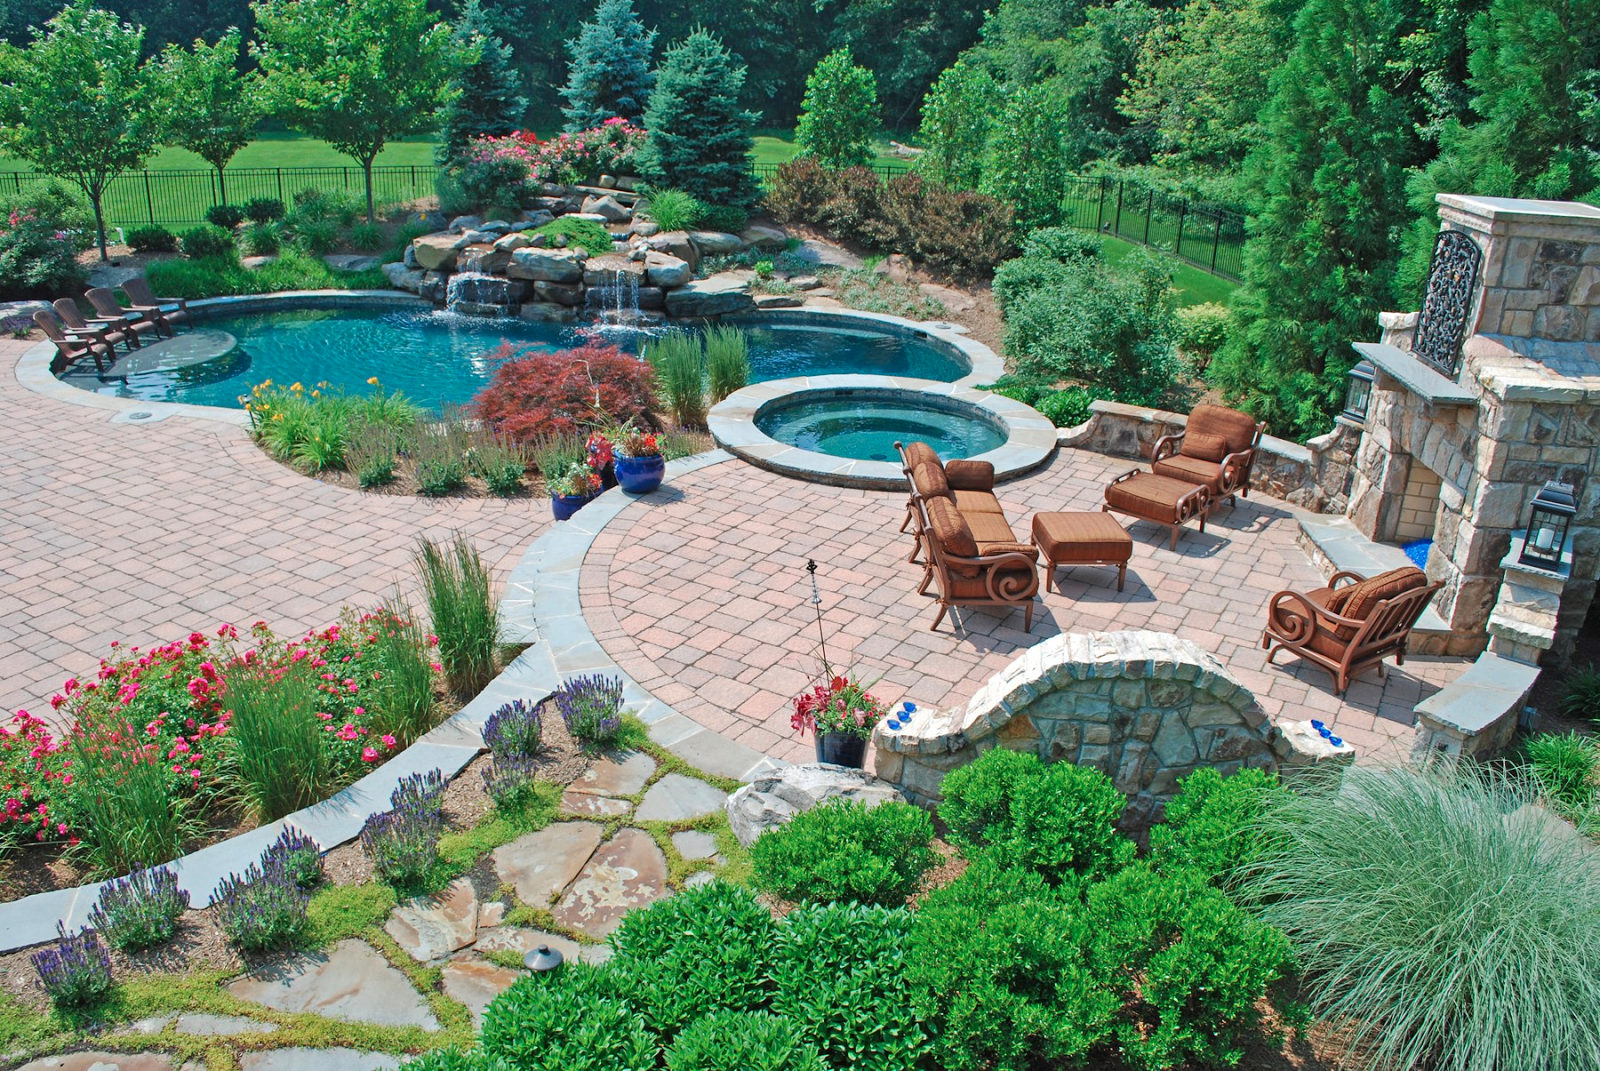 Add Great Value To Your Home With Inexpensive Upgrades Backyard Landscaping Backyard Landscaping Designs Landscape Design